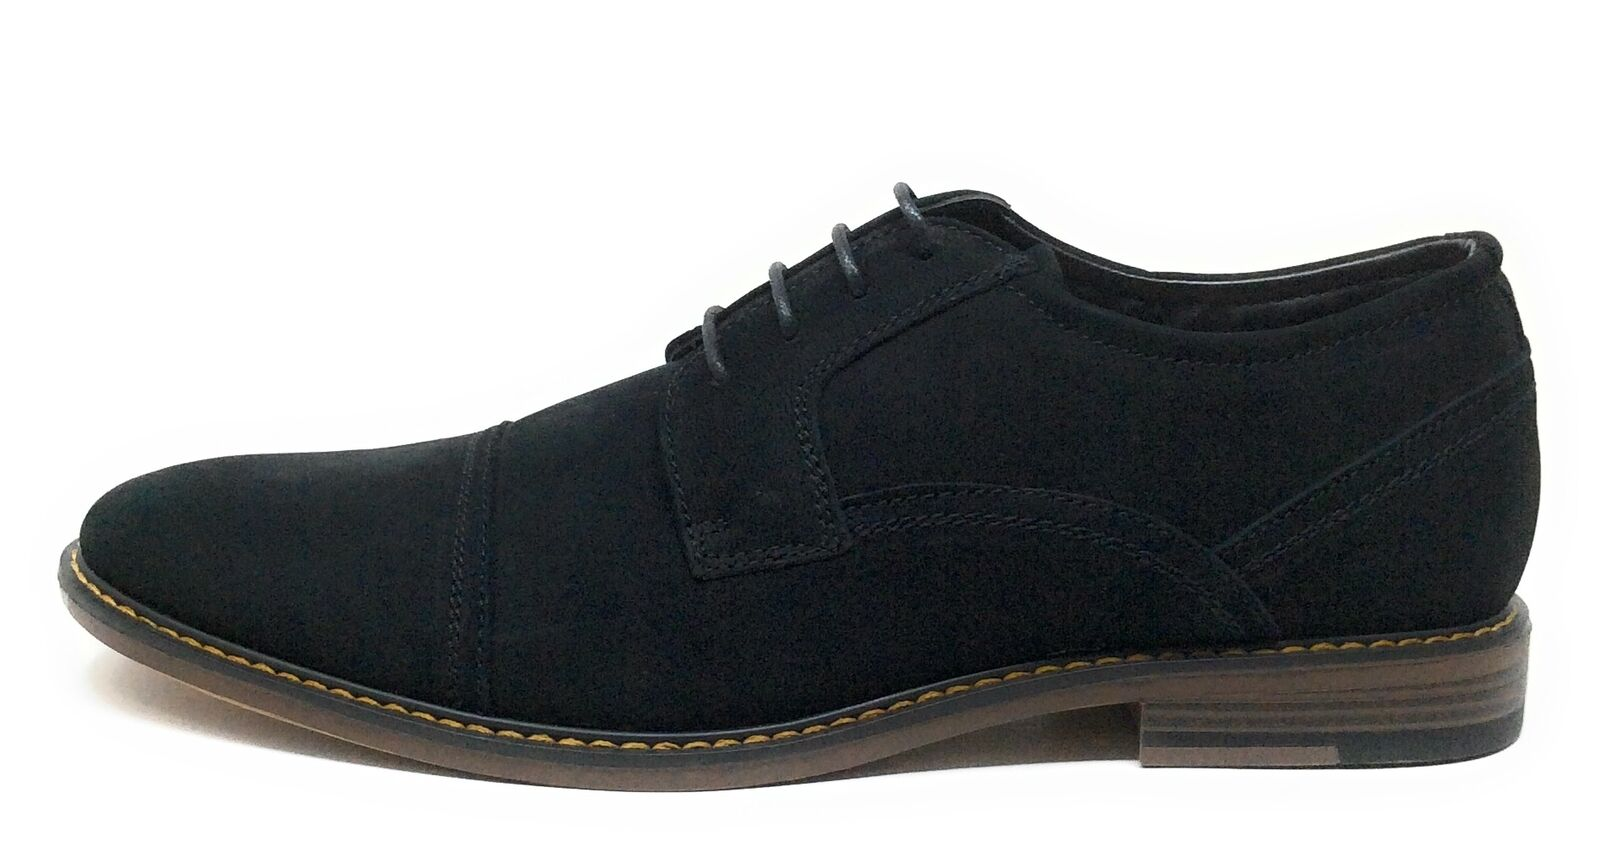 J75 By Jump Mens Paulson Lace Oxford Dress Shoes Black Leather Size 9.5 M US